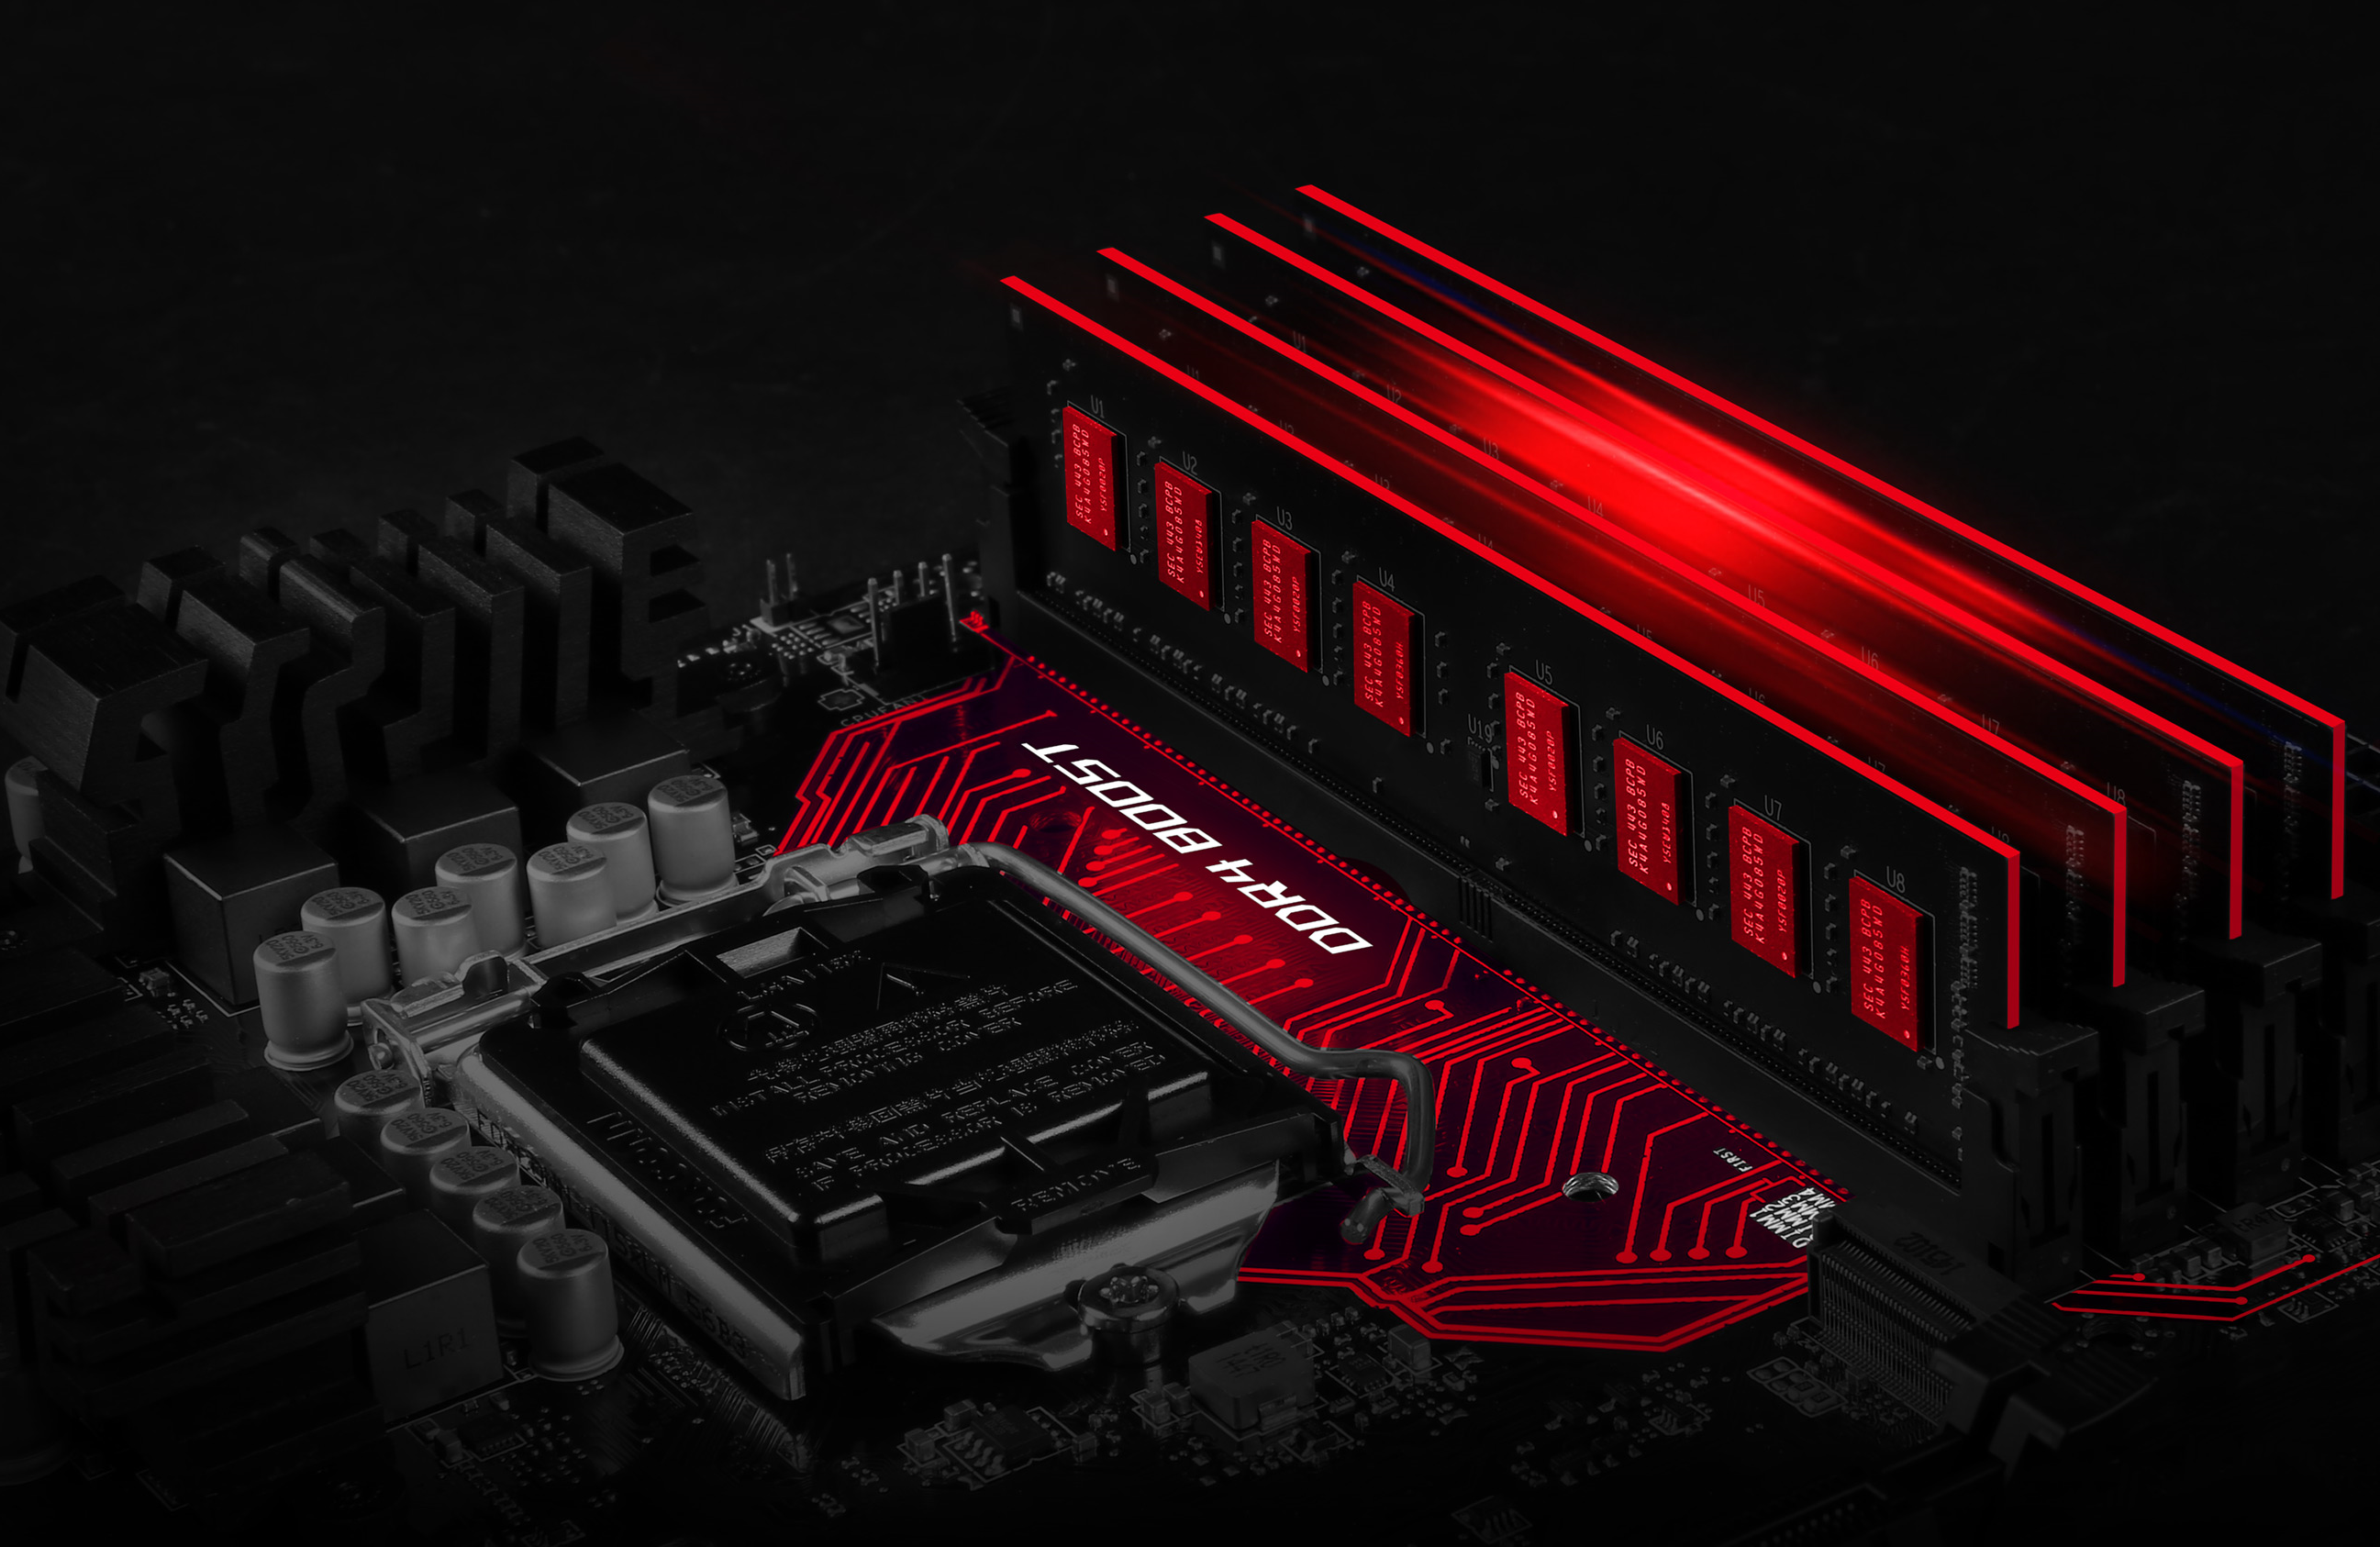 Ddr4 Boost What Is It Exactly Update Unpowered Components Also In Circuit Without Risk Of Damaging Them Ddr4boost3